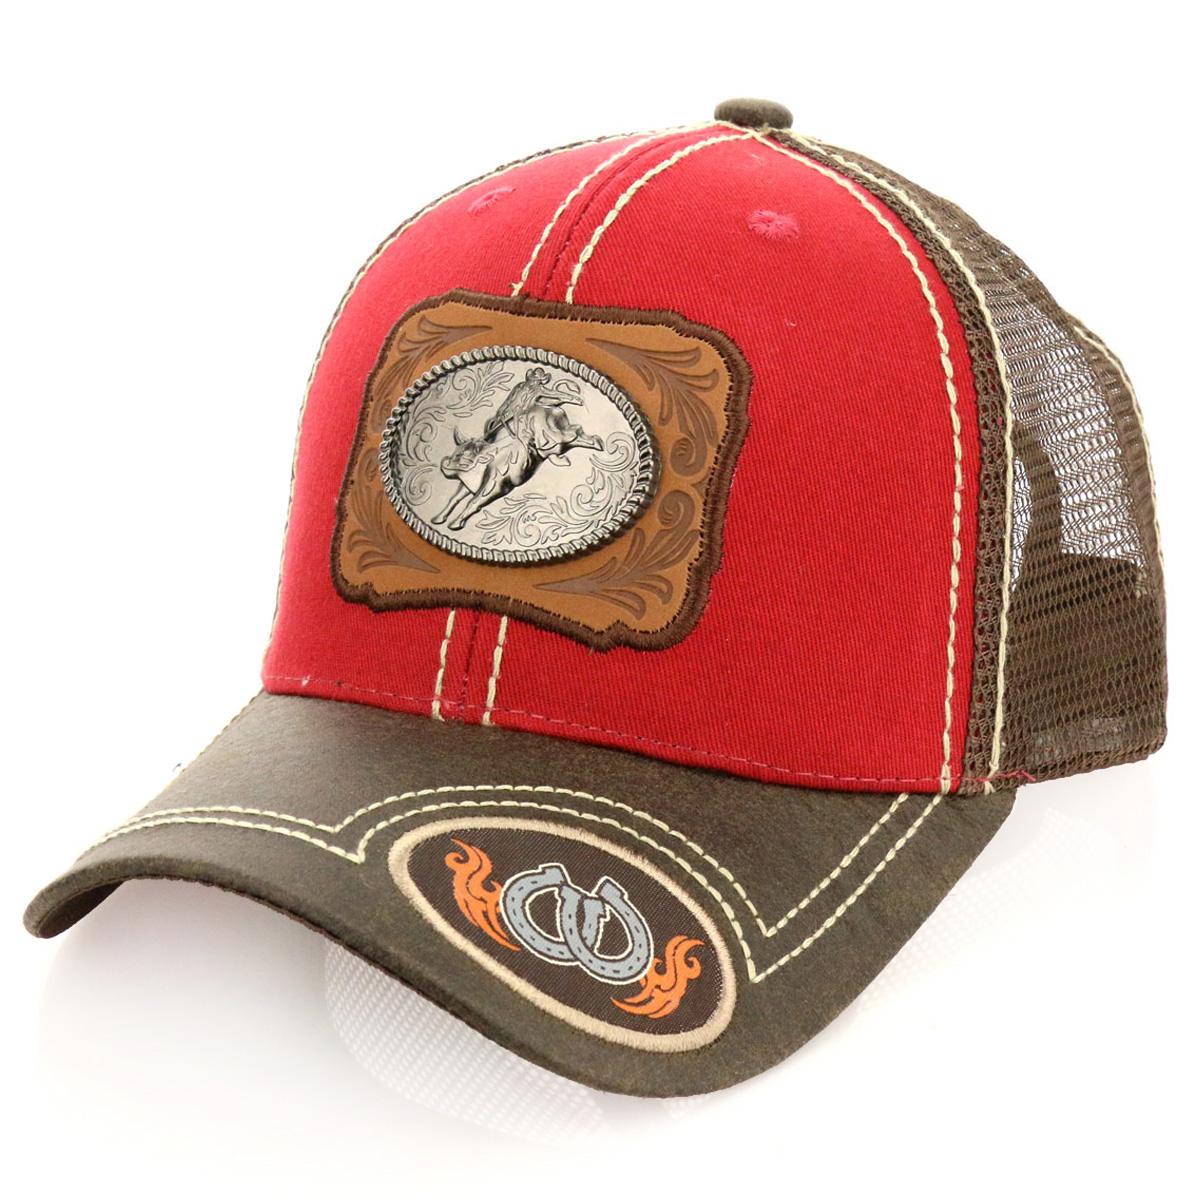 Pitbull Bull Riding Patch Metal Cotton Vintage Mesh Ball Cap-PB-114/RED